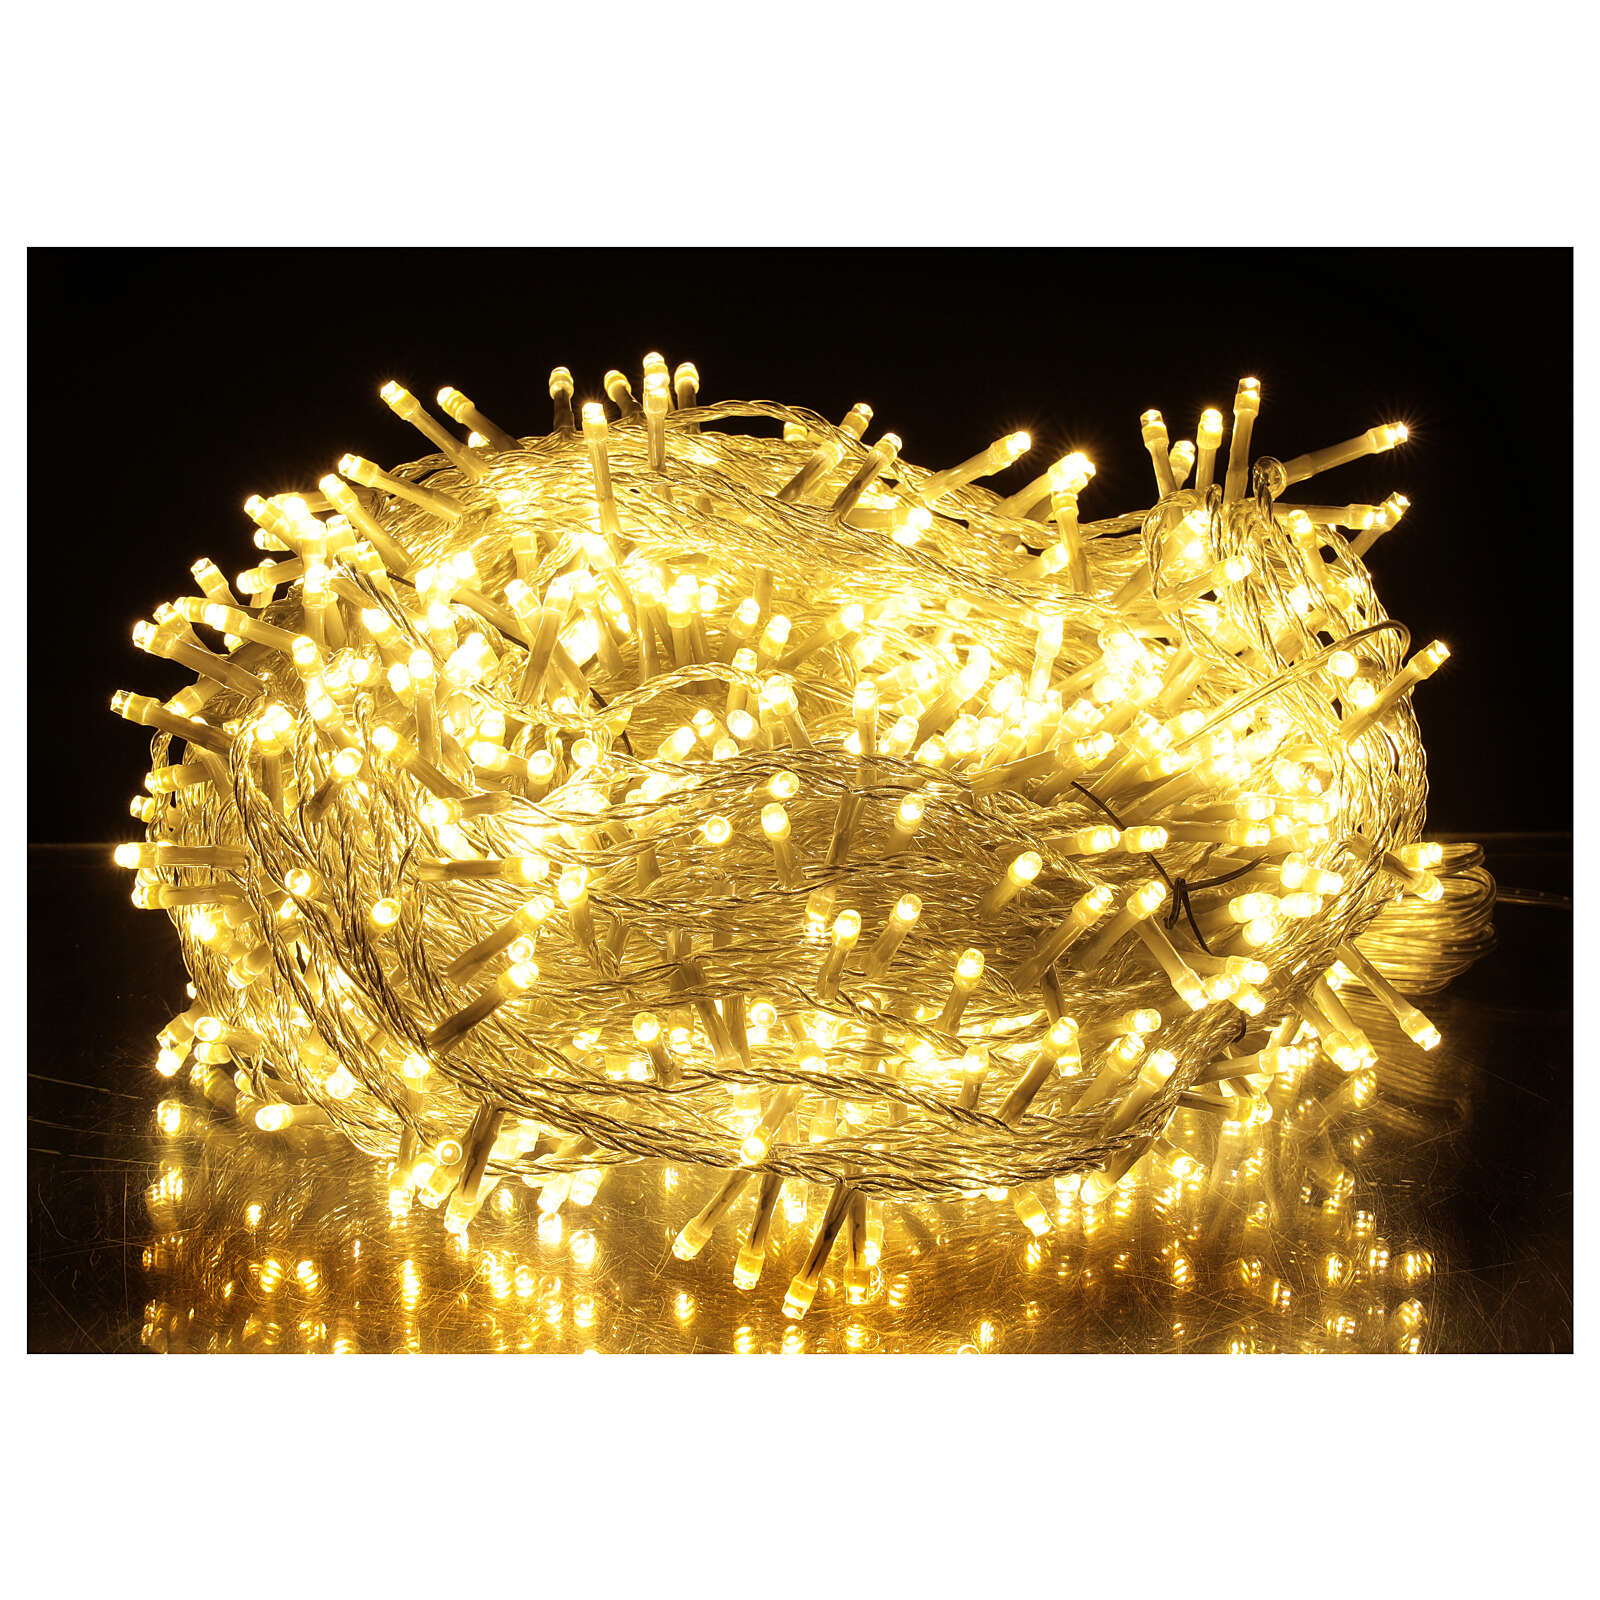 LED string lights 800 lights 2 in 1 warm cold white clear wire 56 m indoor outdoor 3